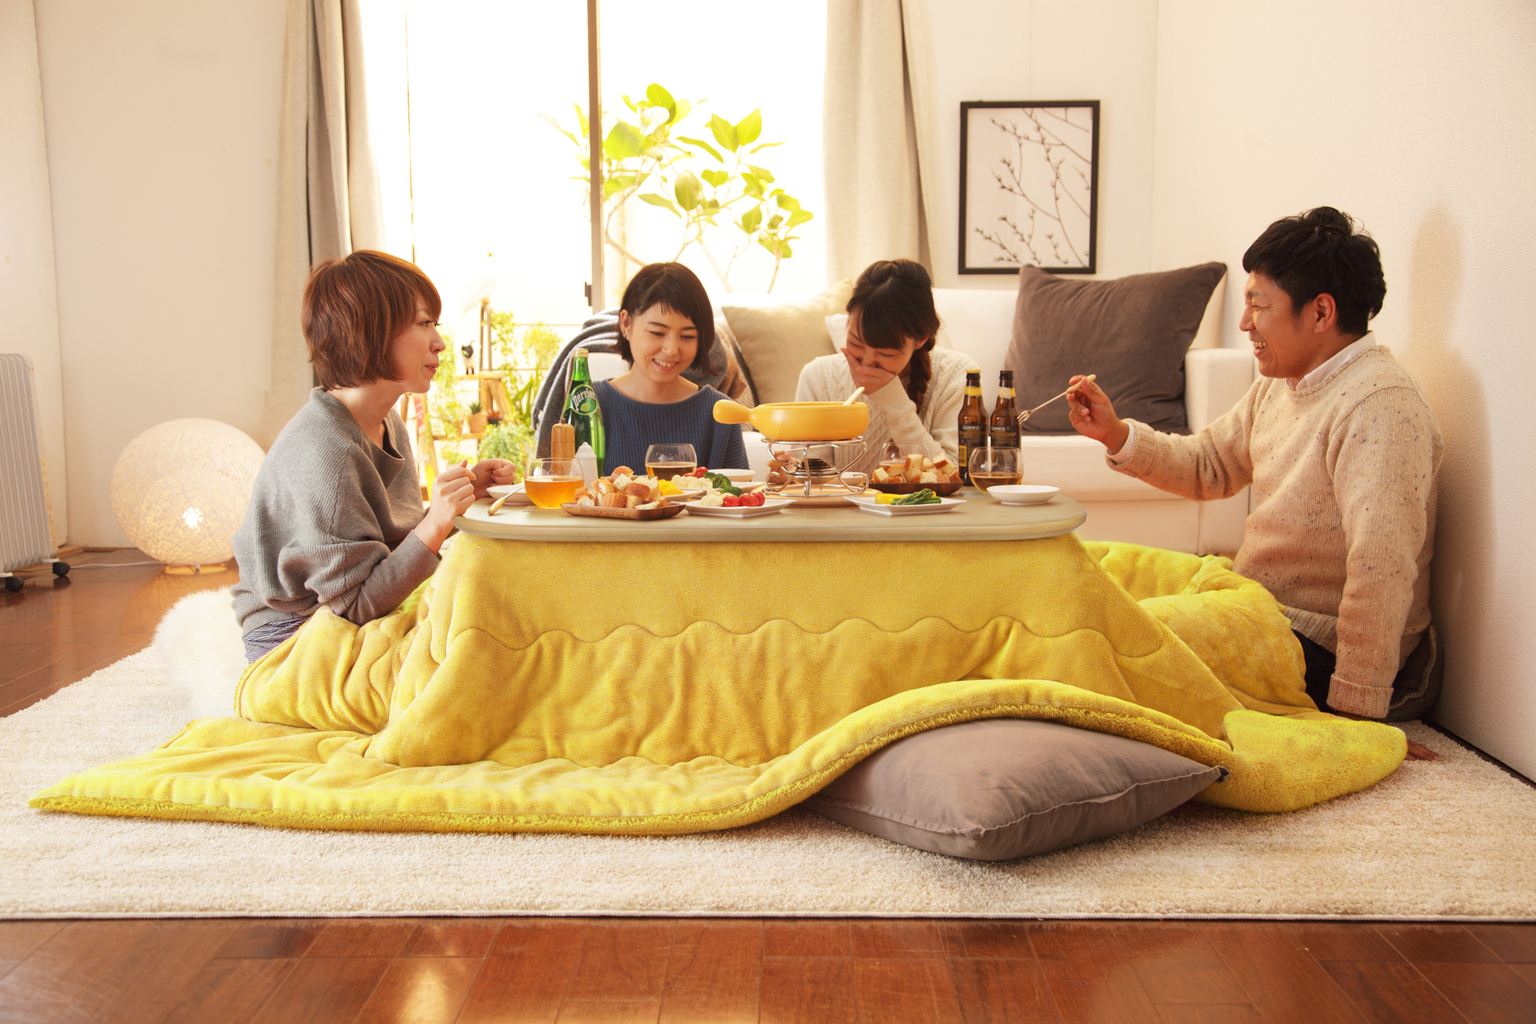 Kotatsu Dining for Winter: at Restaurants, on a Train, and ...